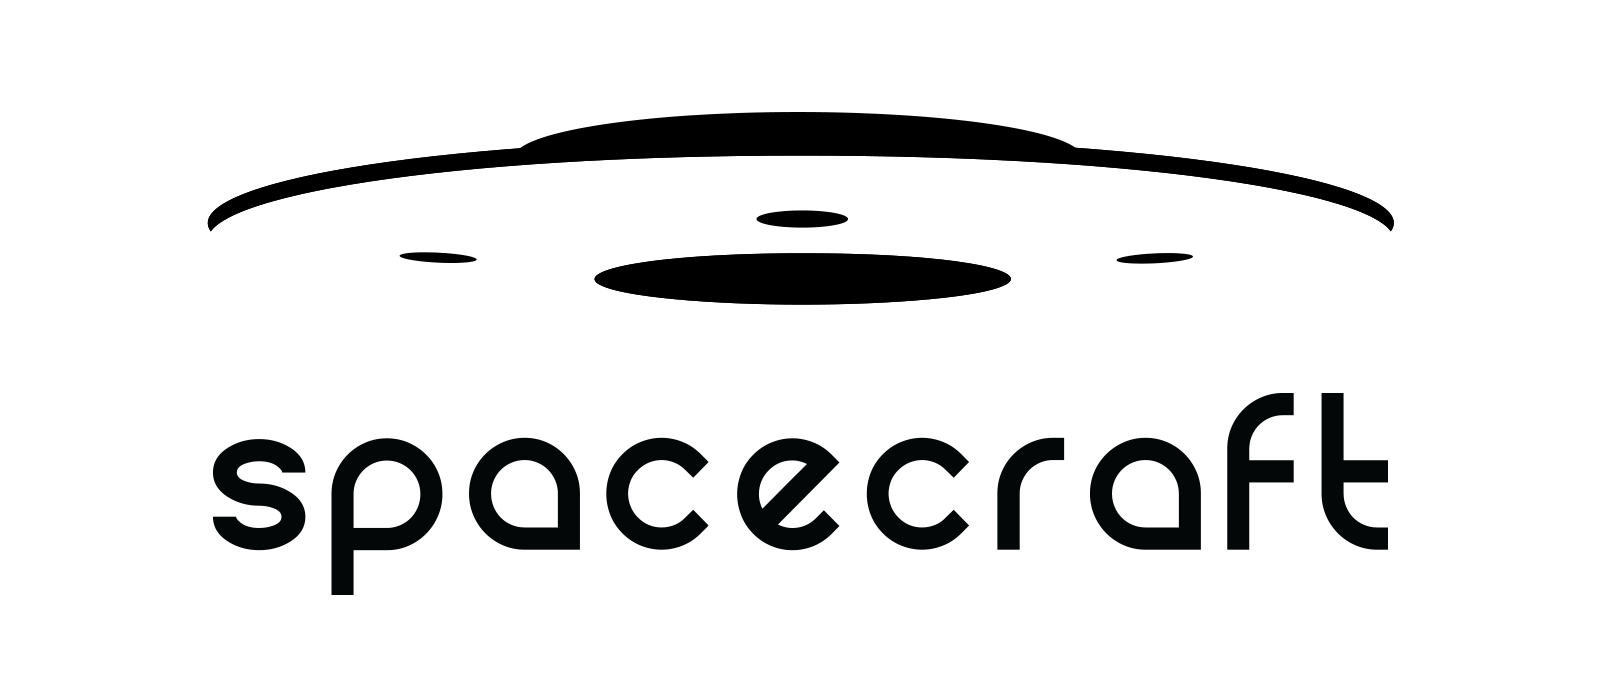 spacecraft-logo-winner